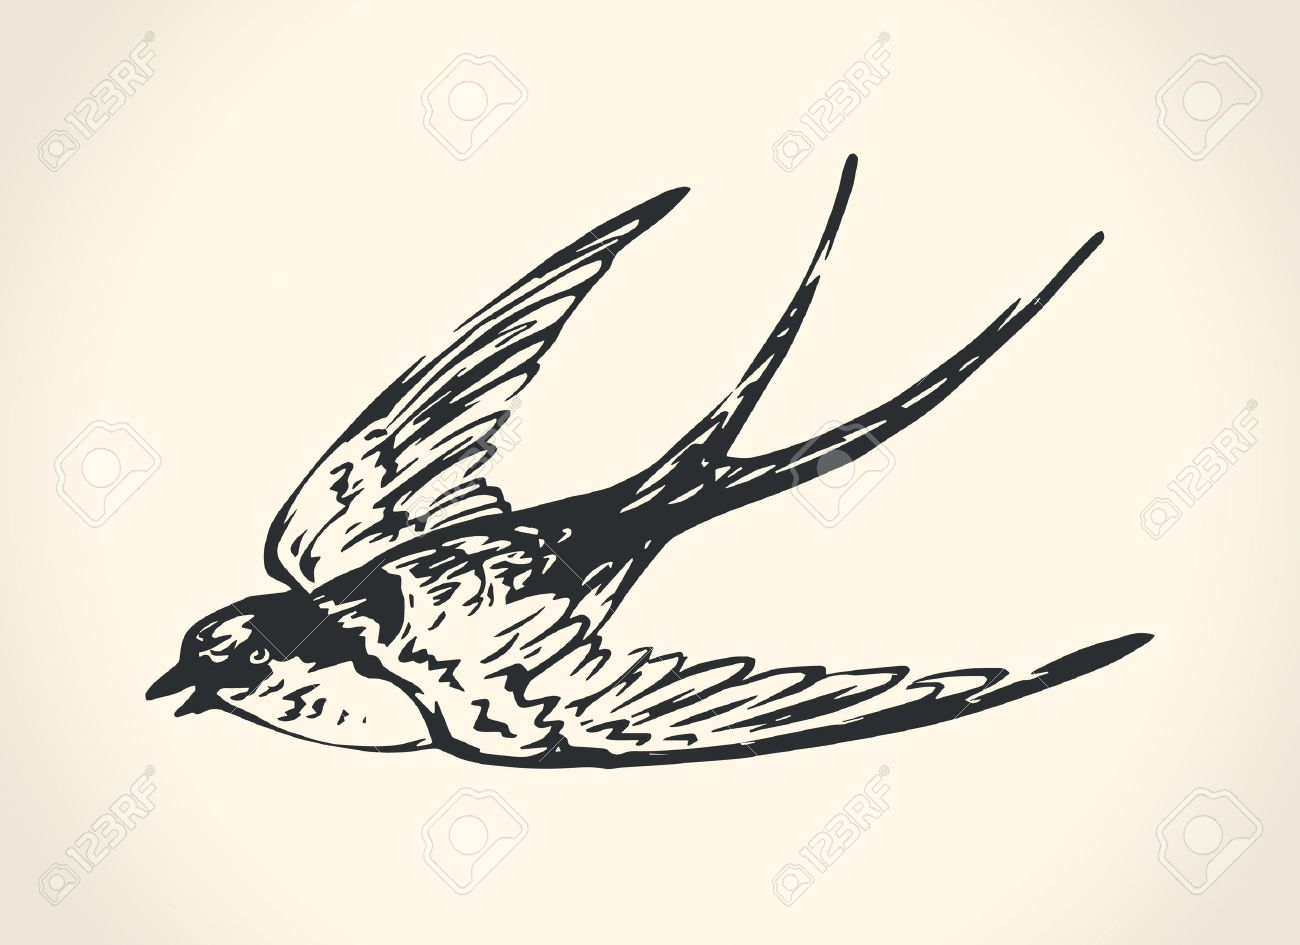 Vintage Illustration Of Swallow Stock Vector